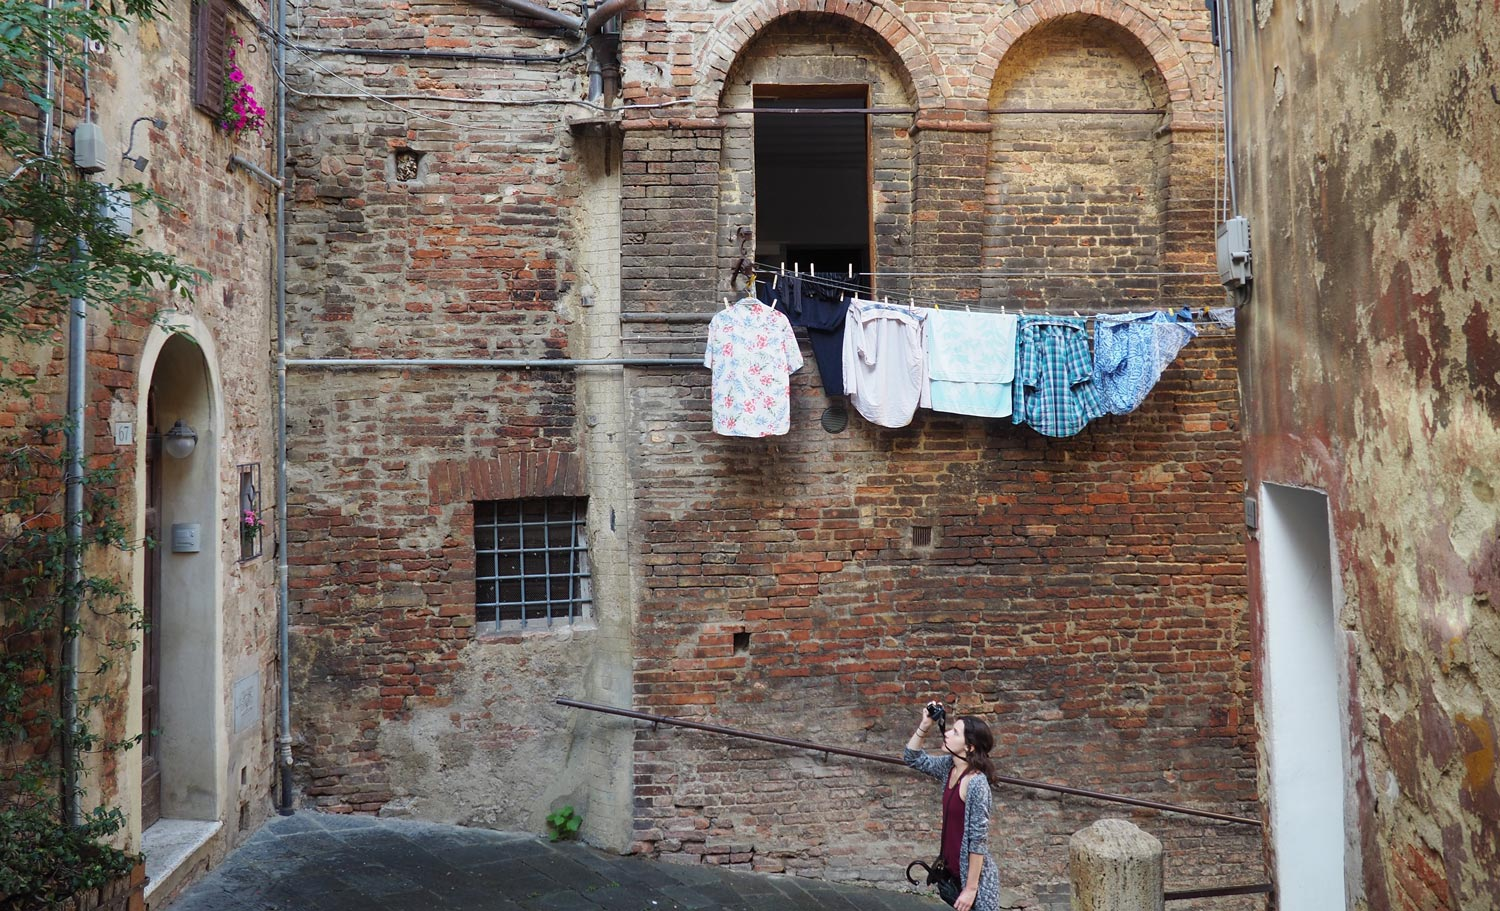 Explore Siena on foot this summer